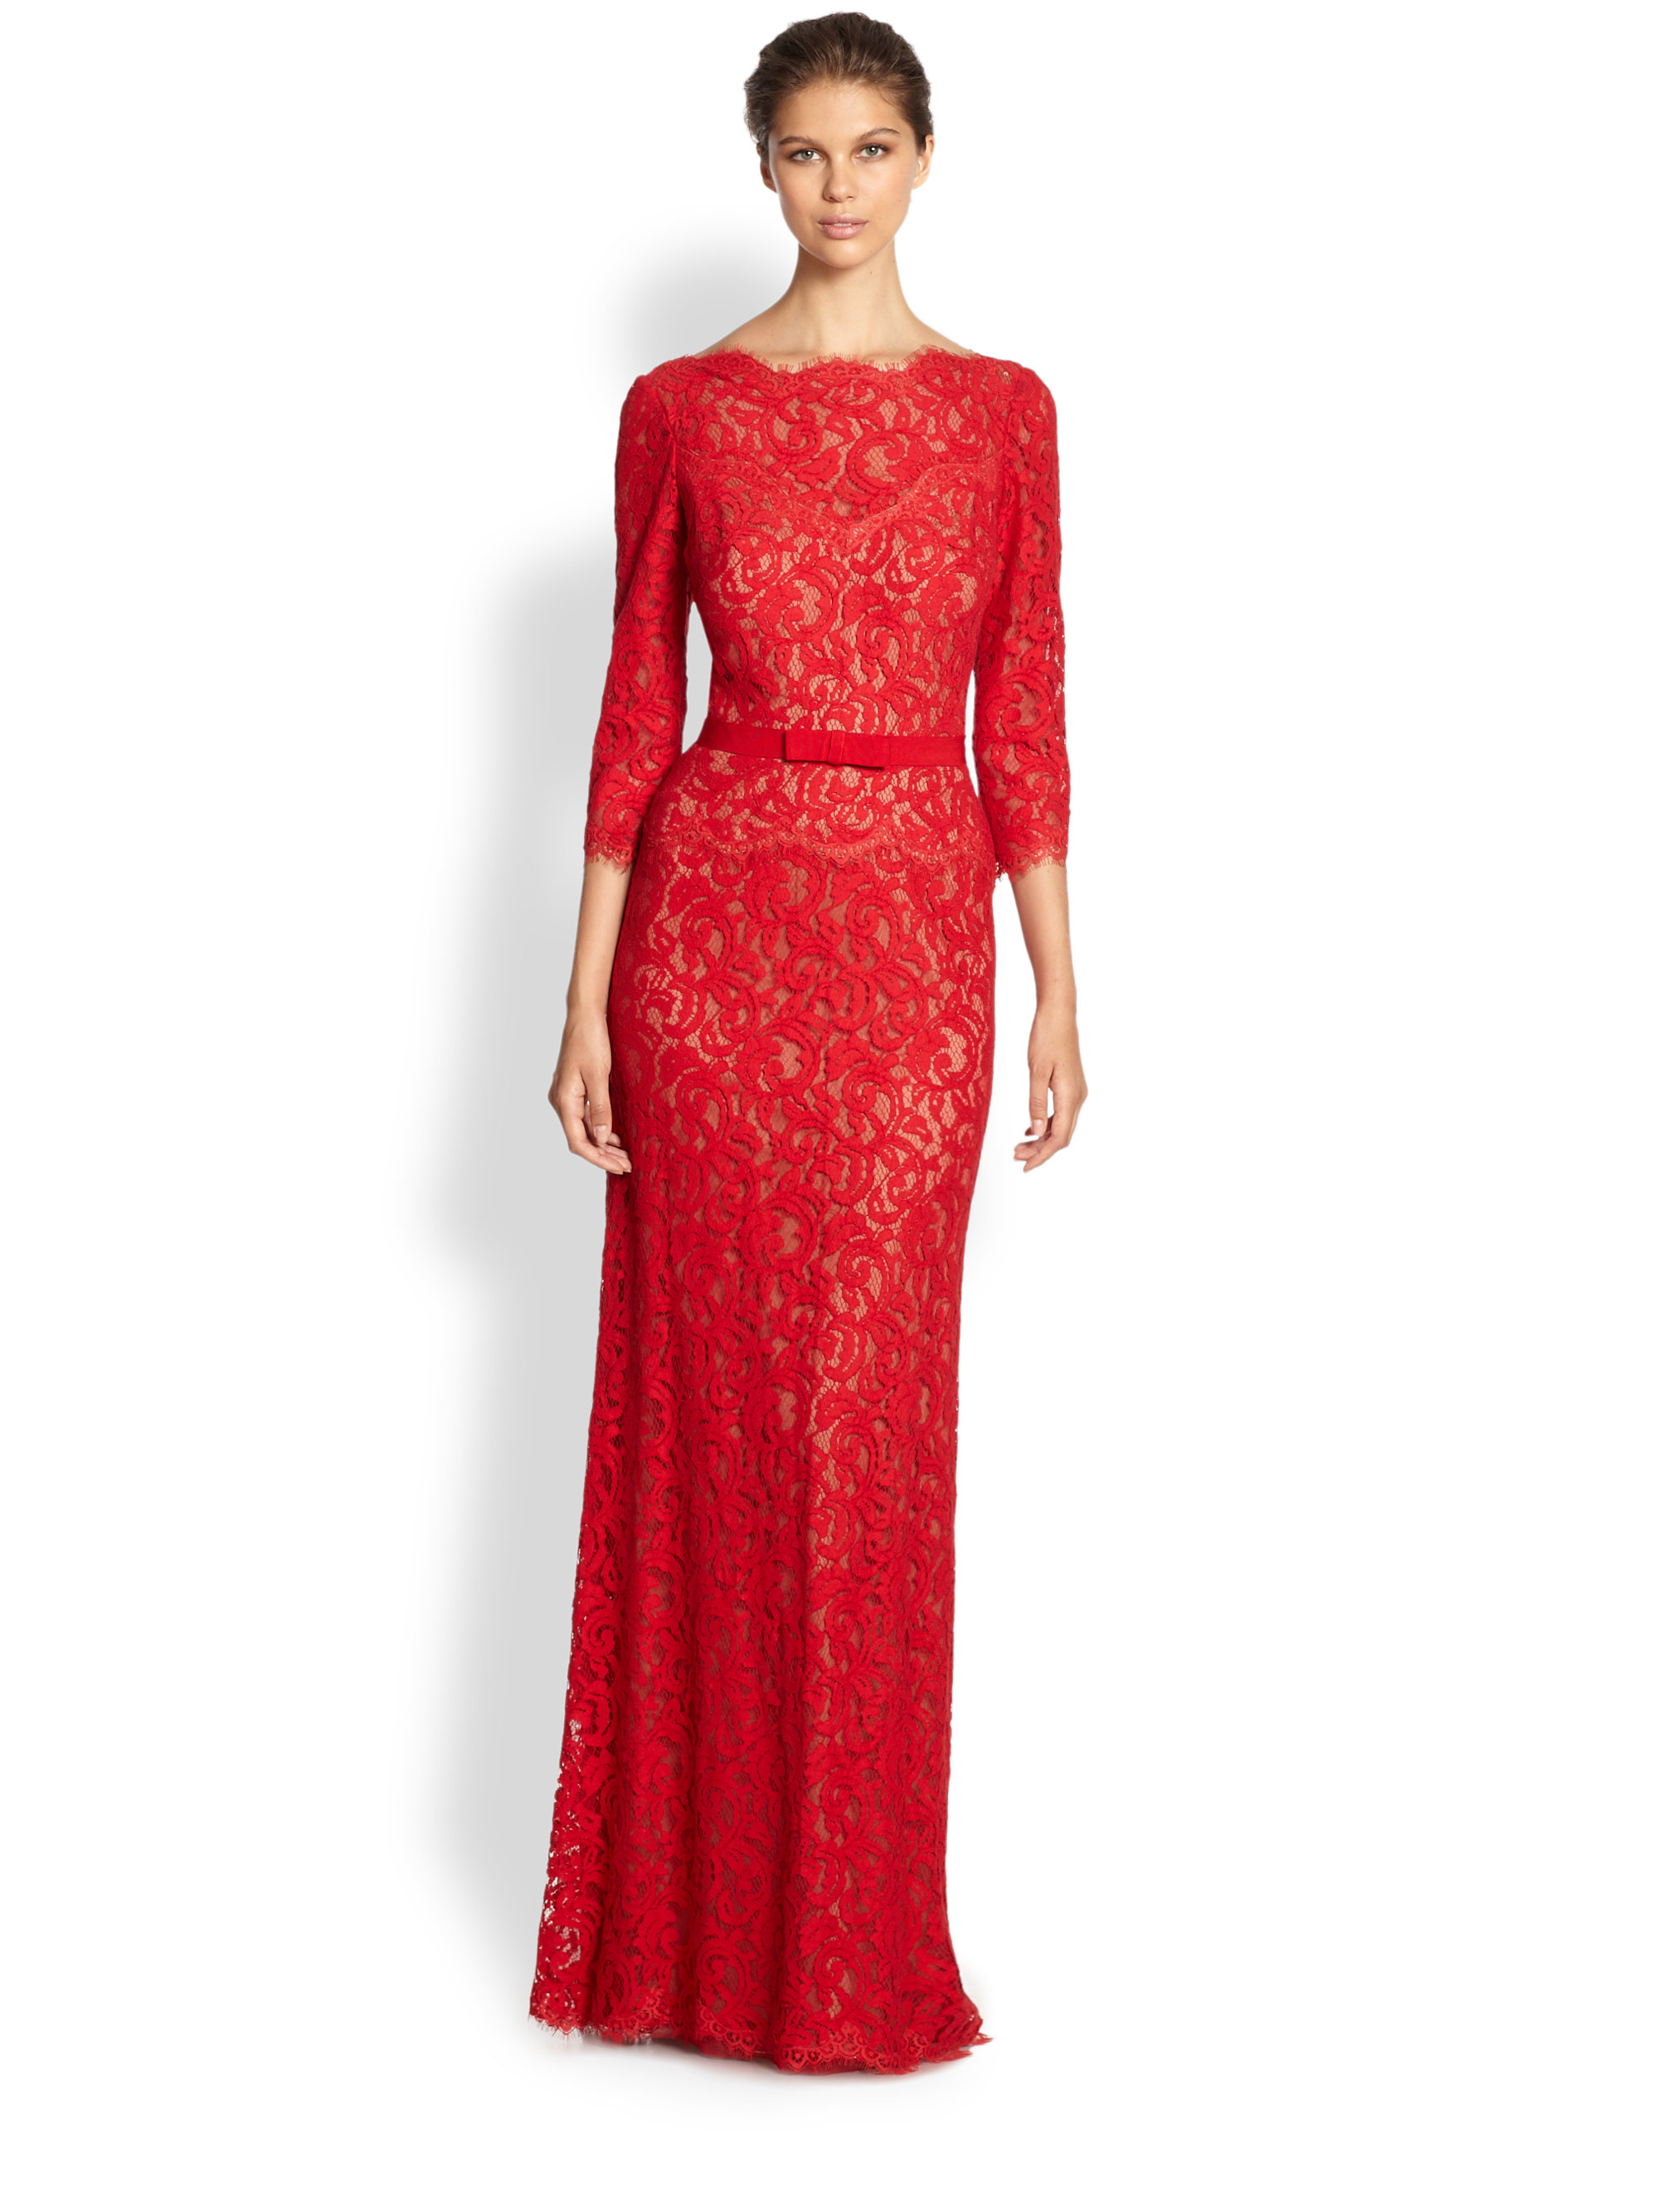 Lyst - Tadashi Shoji Illusion Lace Gown in Red